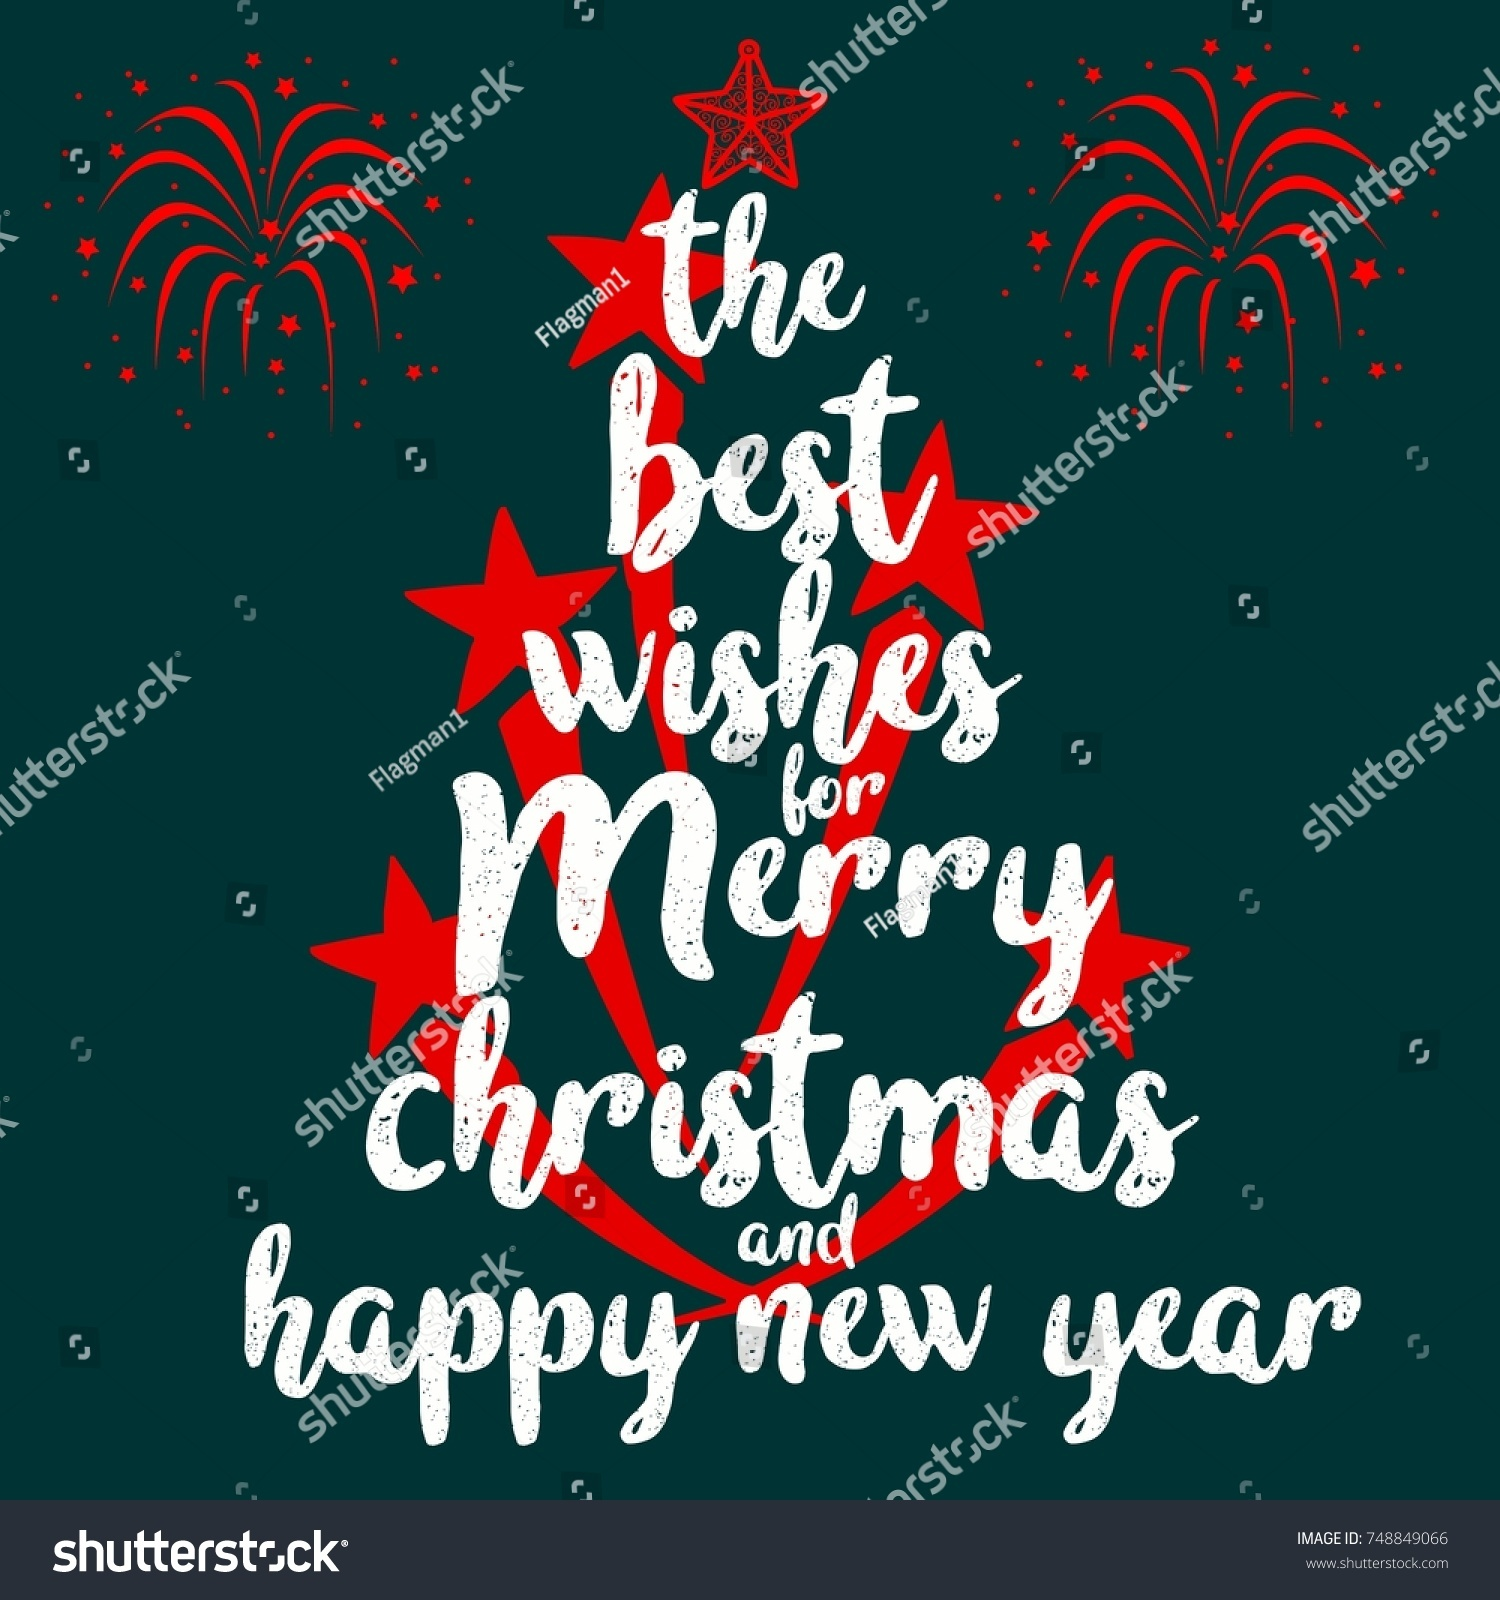 Best wishes merry christmas happy new stock vector 748849066 the best wishes for merry christmas and happy new year happy new year wish card kristyandbryce Image collections